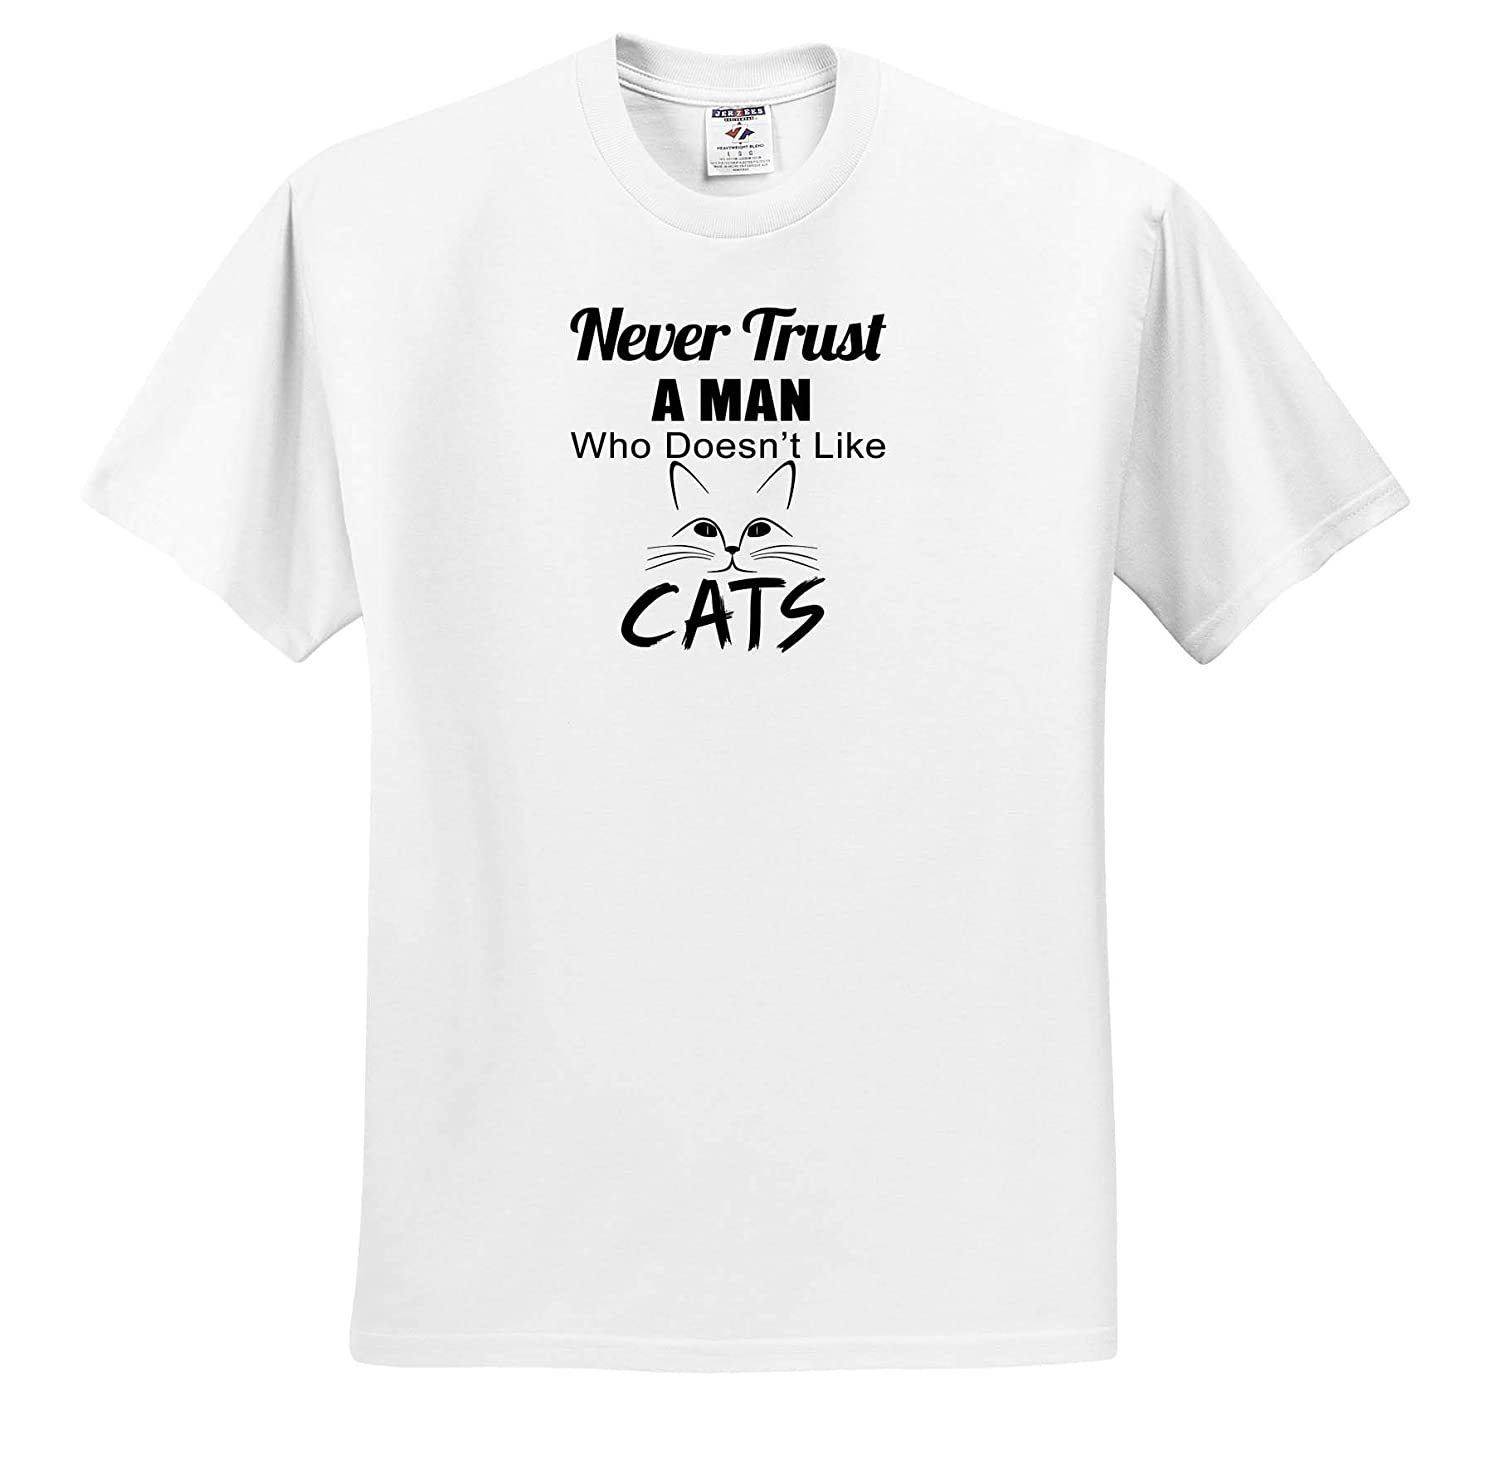 Quotes and Sayings Never Trust A Man Who Doesnt Like Cats ts/_319251 Adult T-Shirt XL 3dRose Anne Marie Baugh